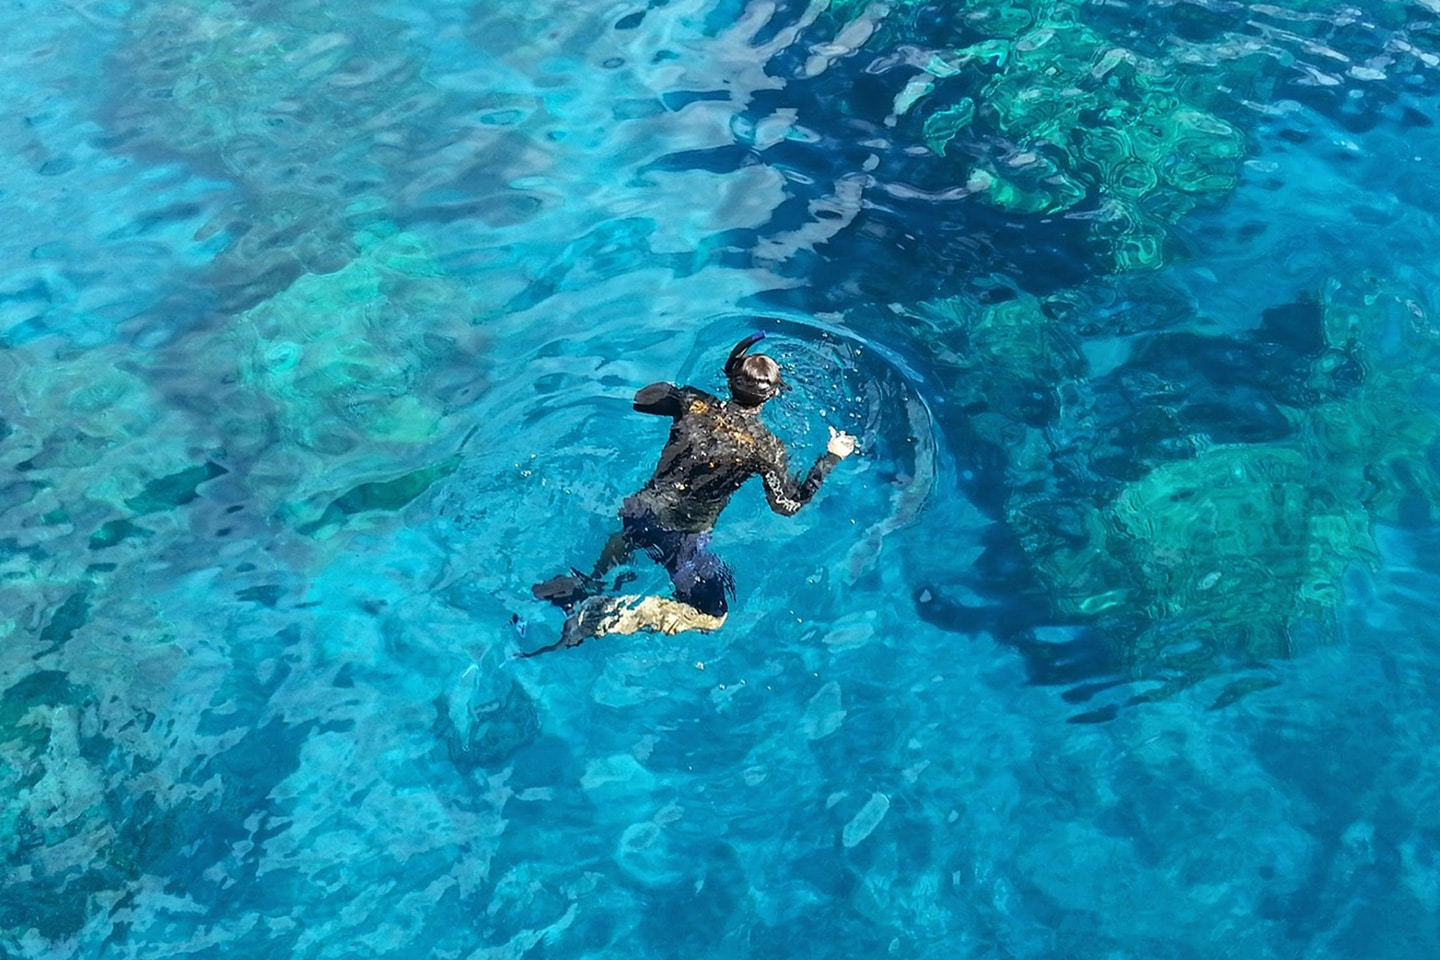 Snorkeling in UV protection clothing